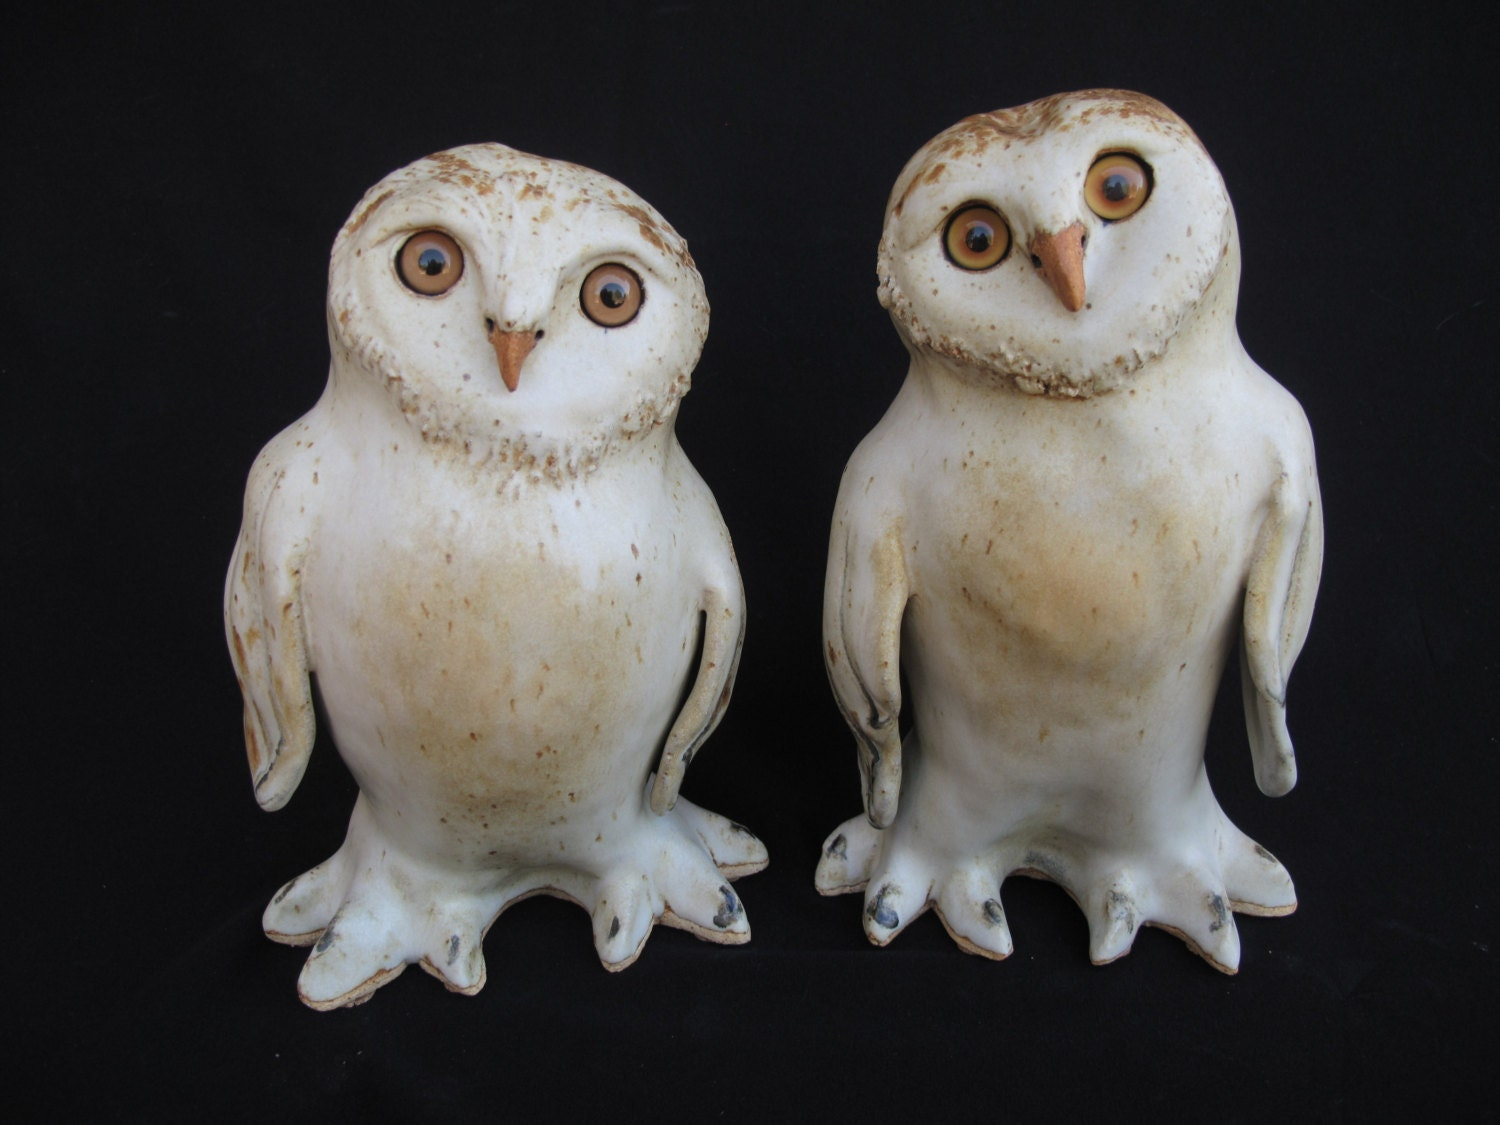 Owl Figurines Snowy Owl Sculptures Clay Owls For Home Decor